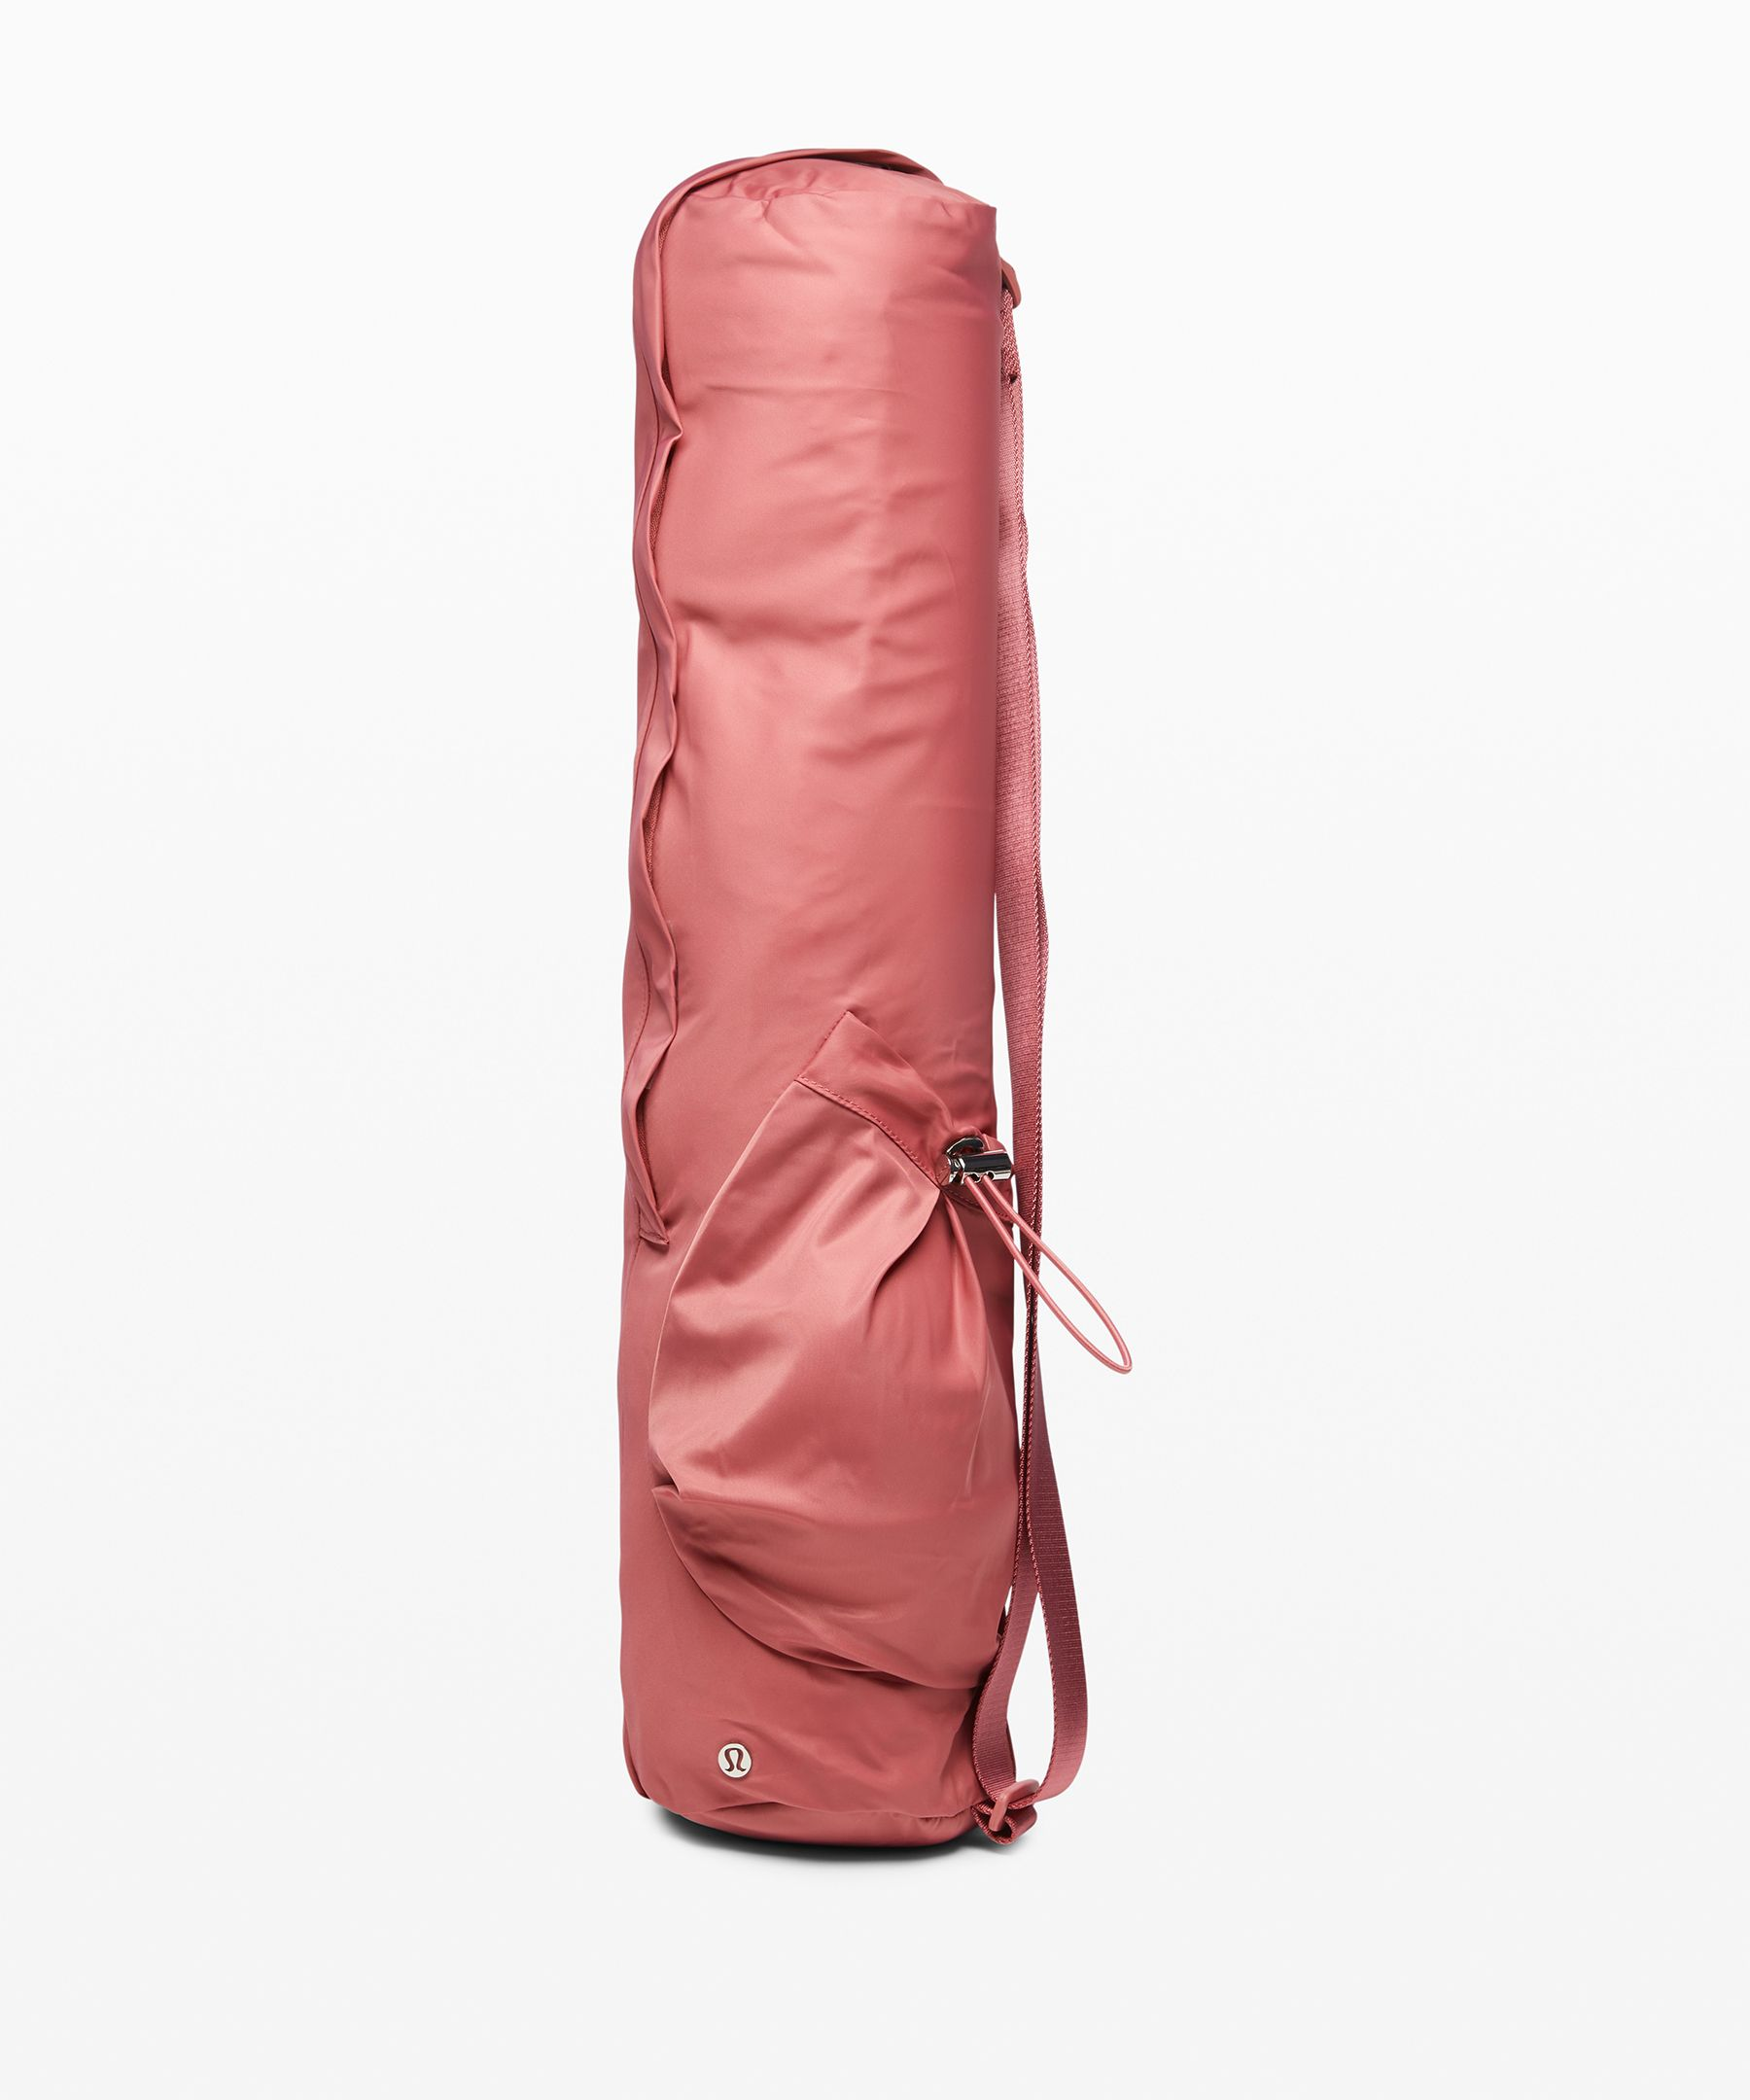 Carry your mat with ease in  this convenient bag. The  zippered closure makes mat  access and storage easy, while  the separate side pocket is  perfectly sized for your water  bottle.